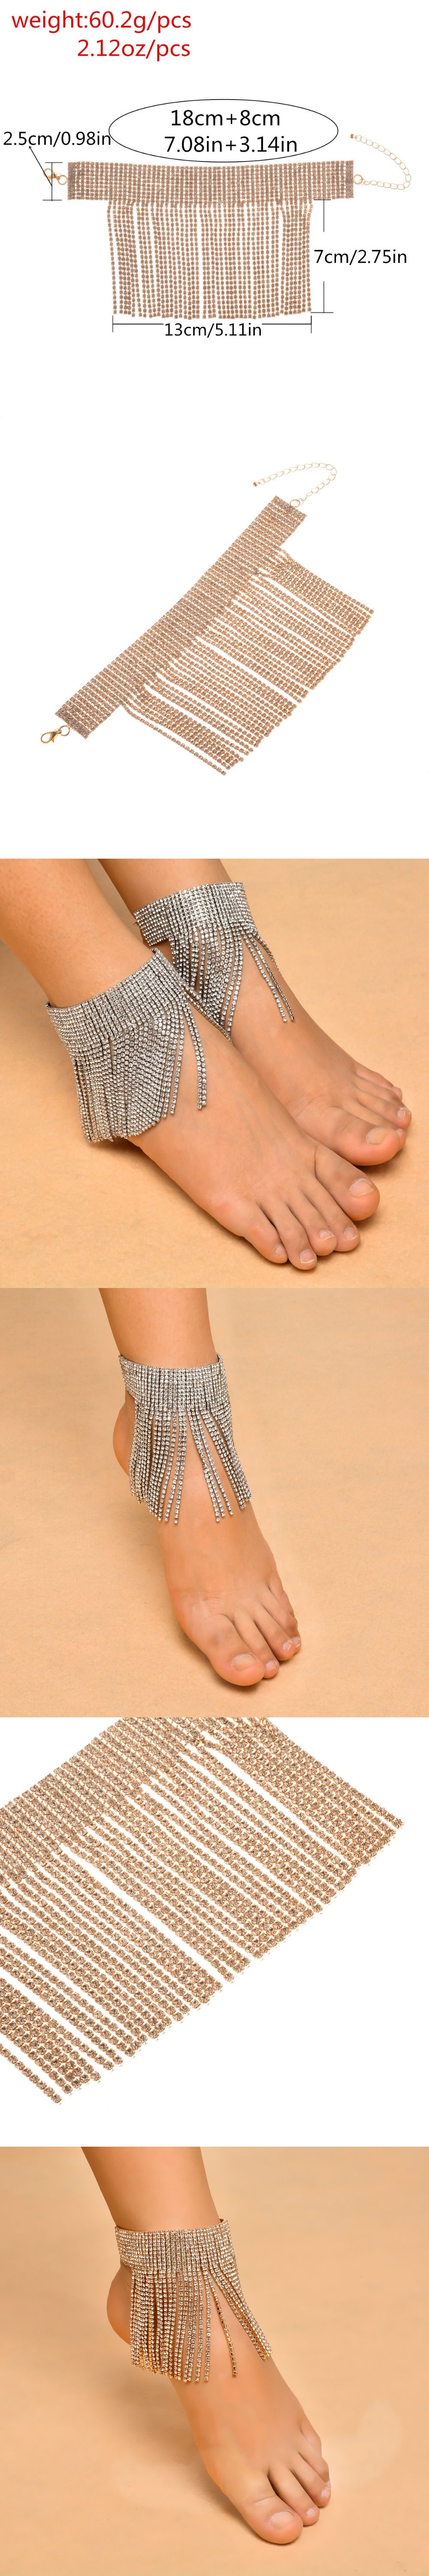 oblacoder for india pink anklets indian women woman studded elegant online rhinestone anklet silver